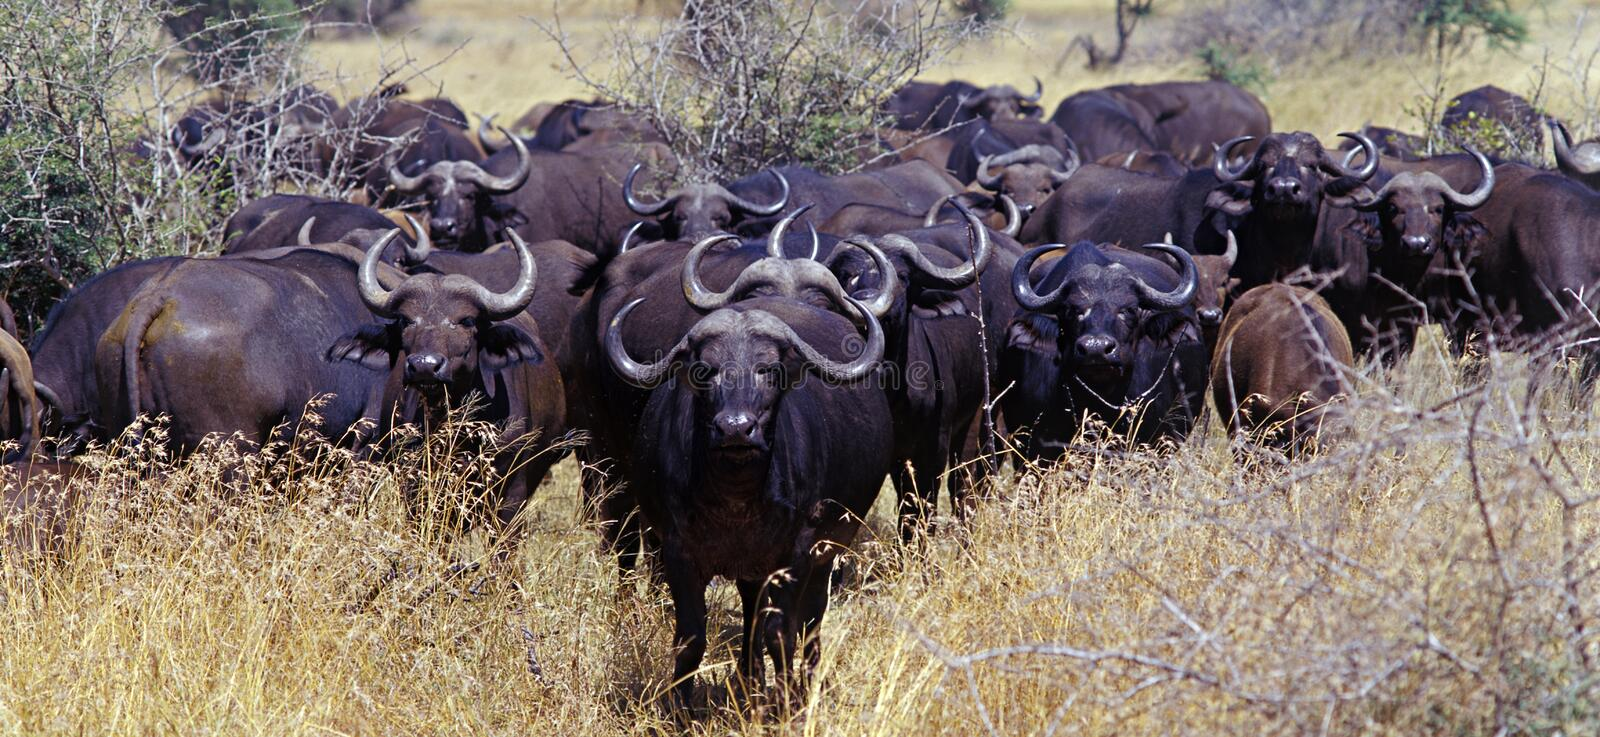 African Buffalo 1. Buffalo herd in the Kruger Park, South Africa